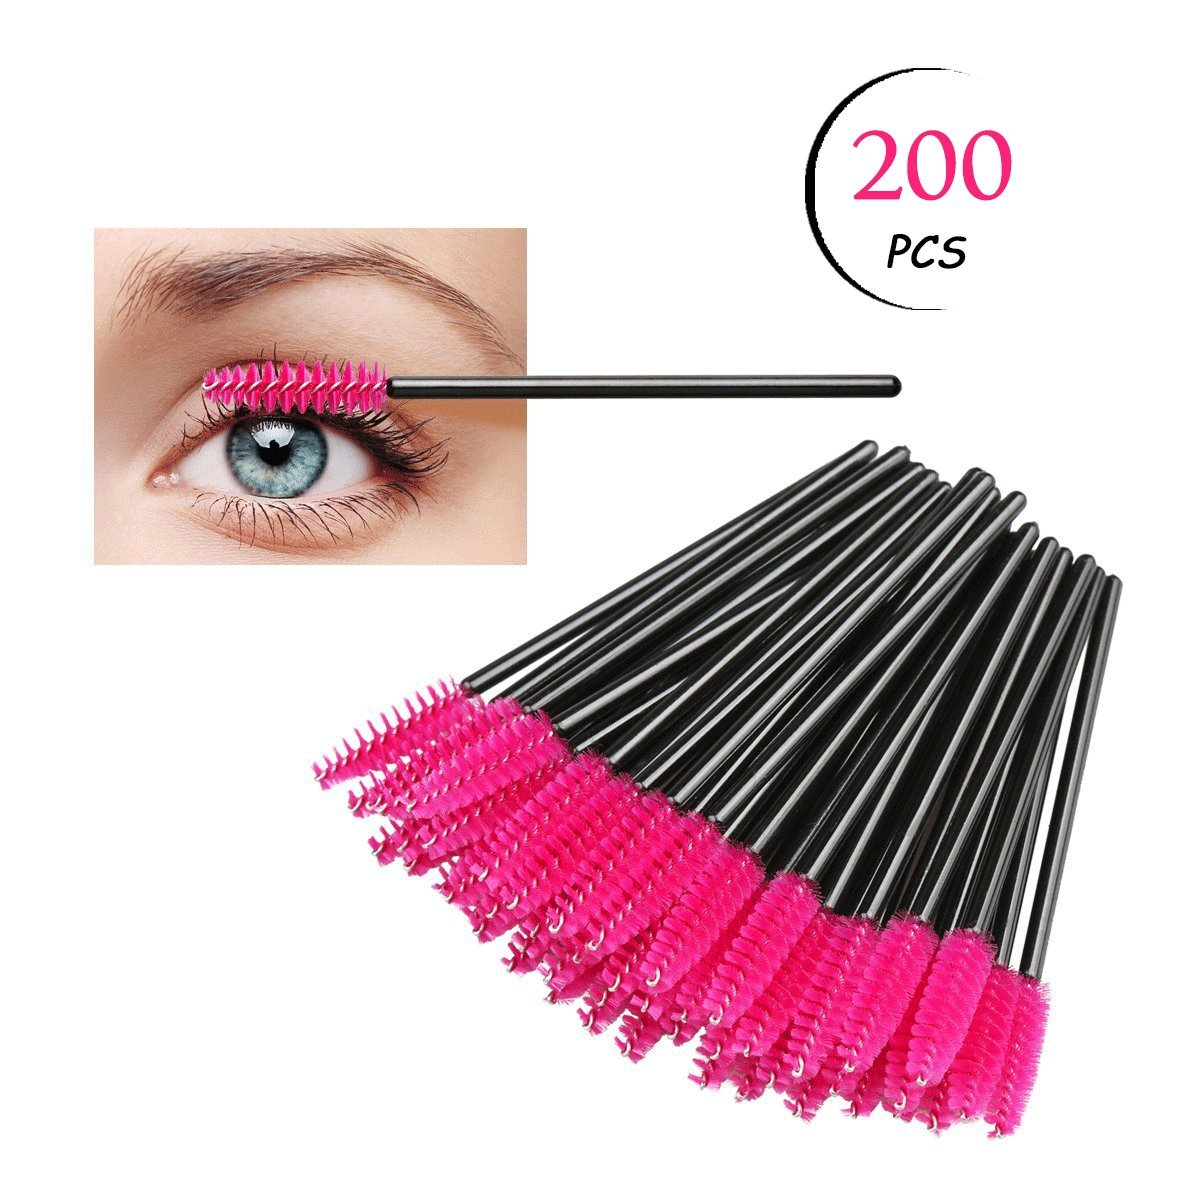 TailaiMei 200pcs Disposable Eyelash Mascara Brushes Wands Applicator Makeup Eye lash Brush Kits(pink)